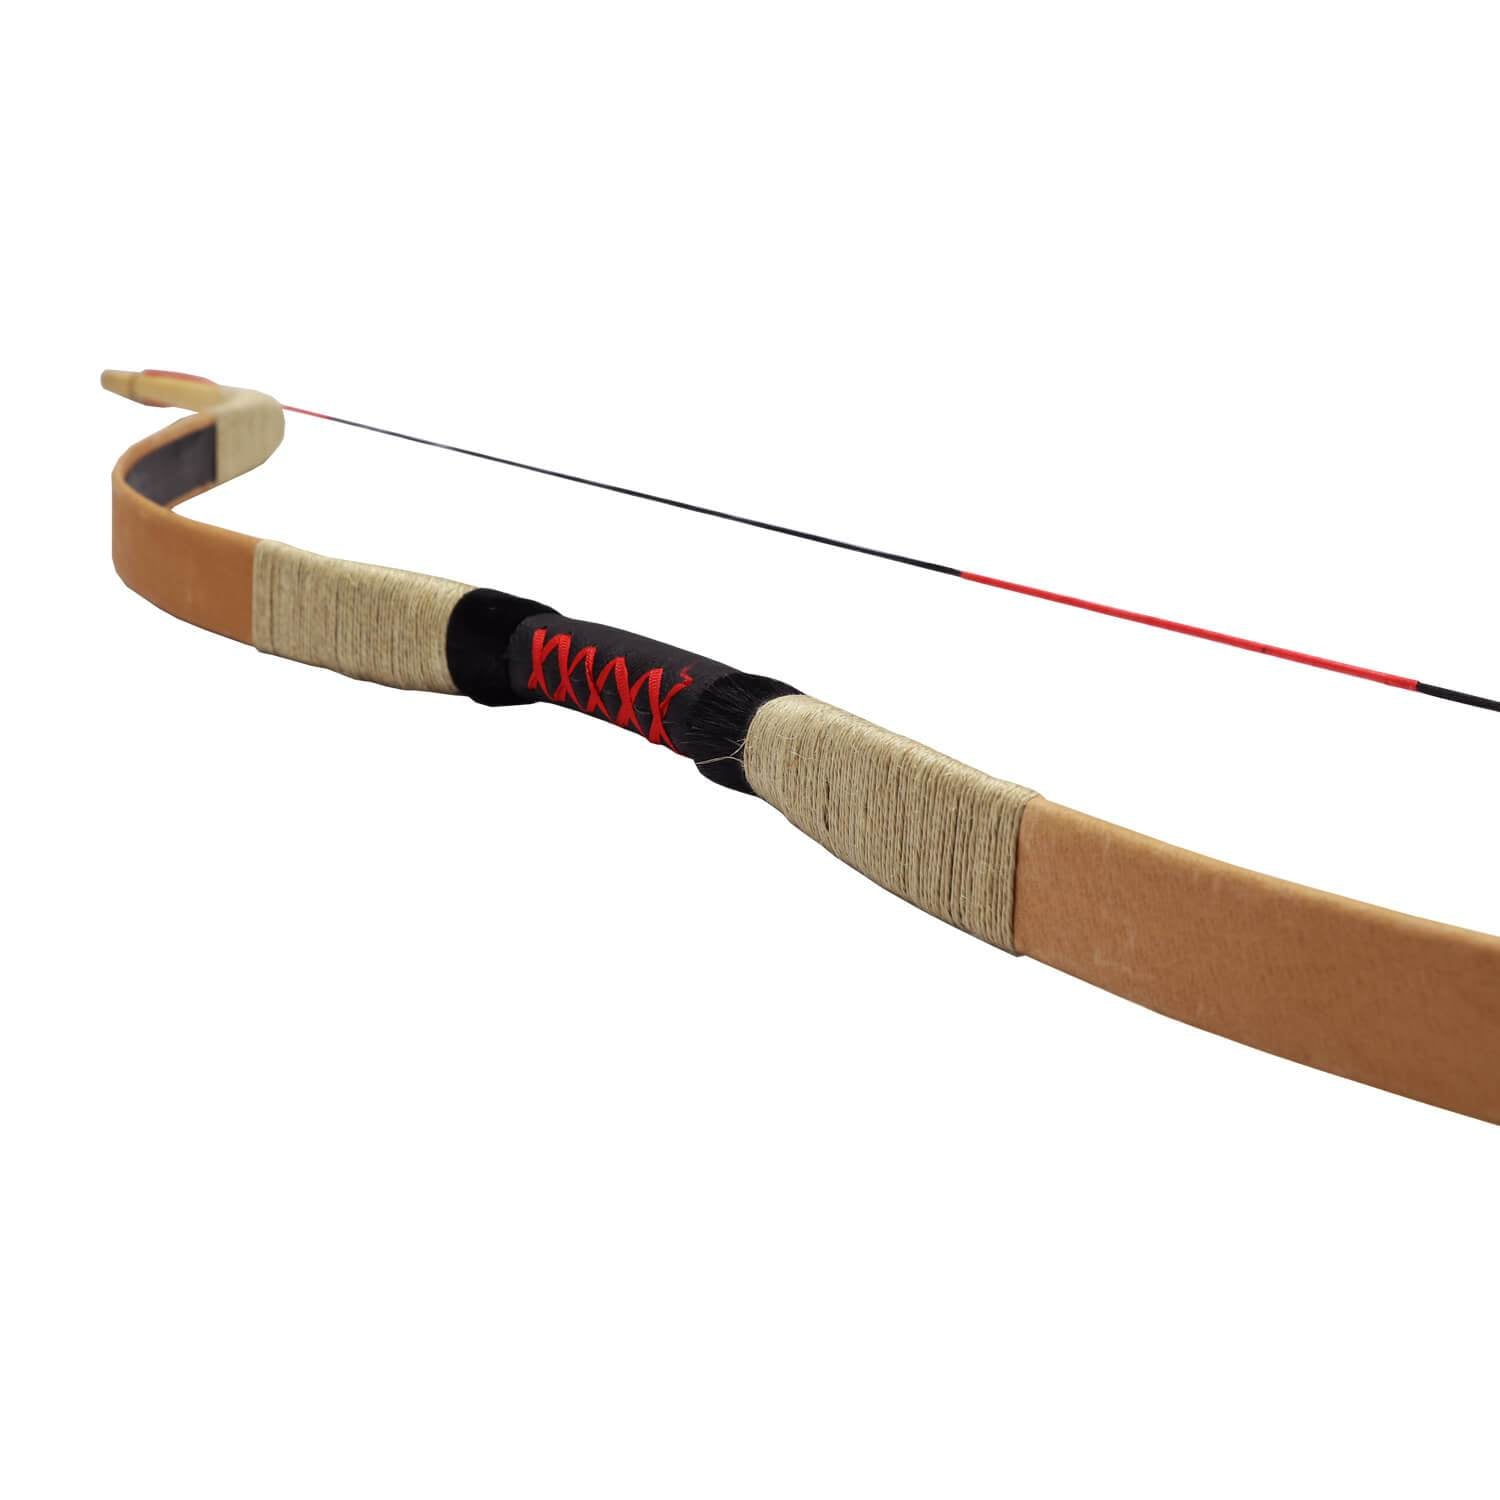 Traditional recurved bow and Lowspeed arrow